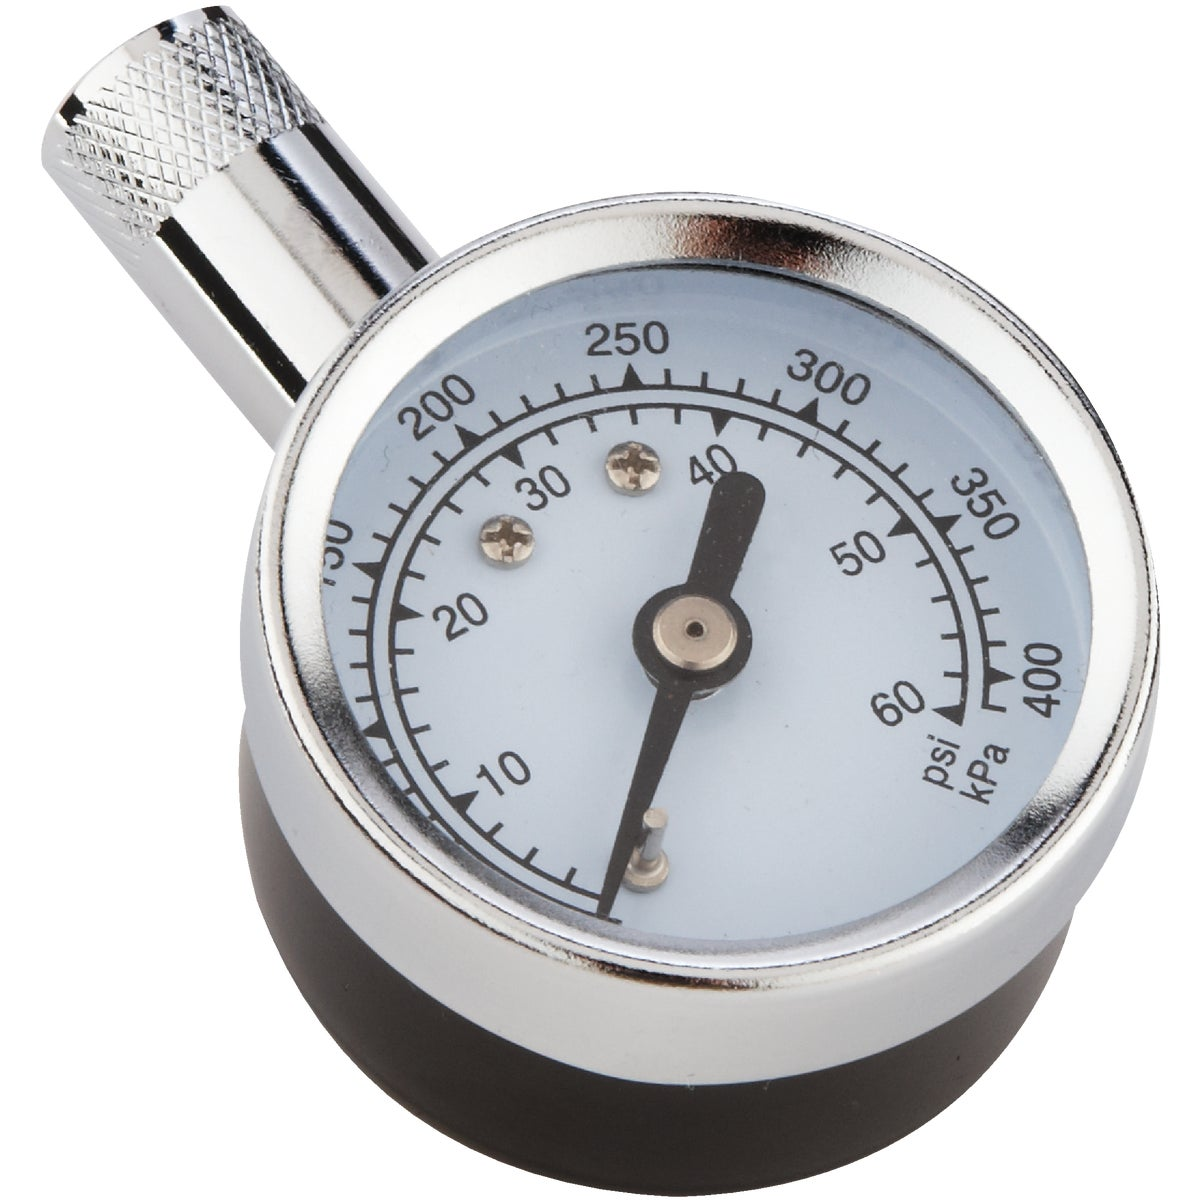 DELUXE DIAL TIRE GAUGE - 75588 by Custom Accessories